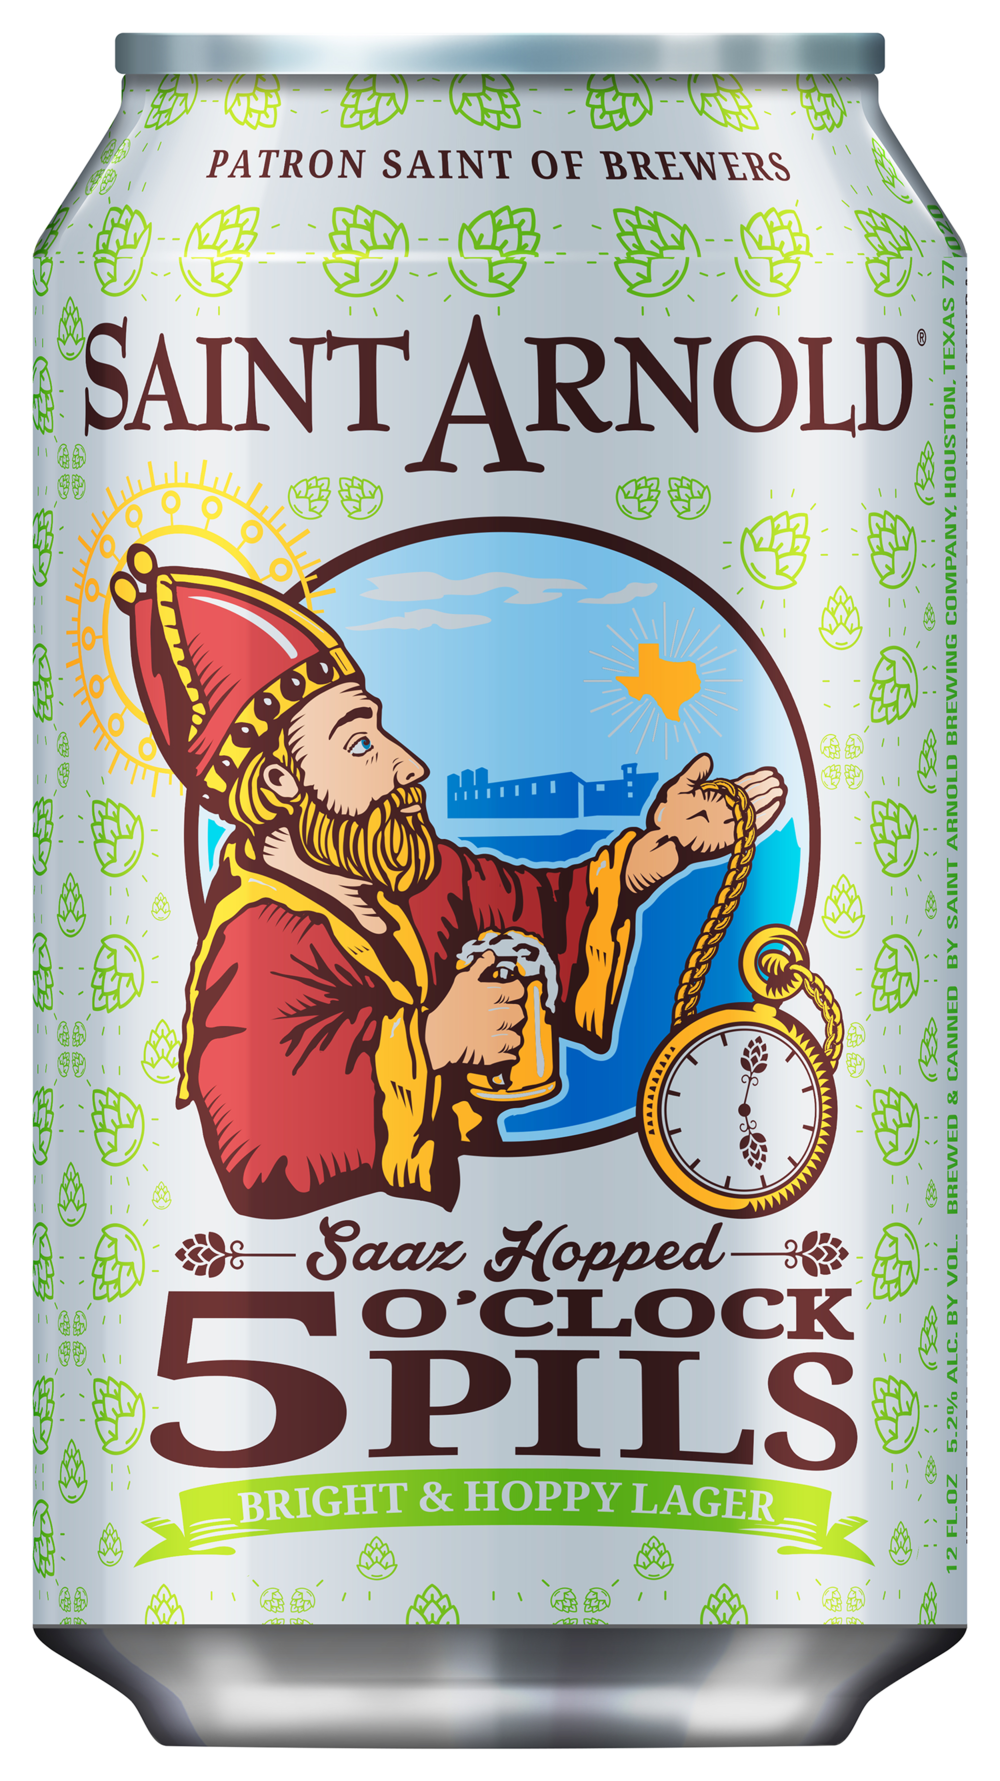 The label first to release was the new beer —  5 O'Clock Pils  which we helped to name,design, launch and of course, taste.